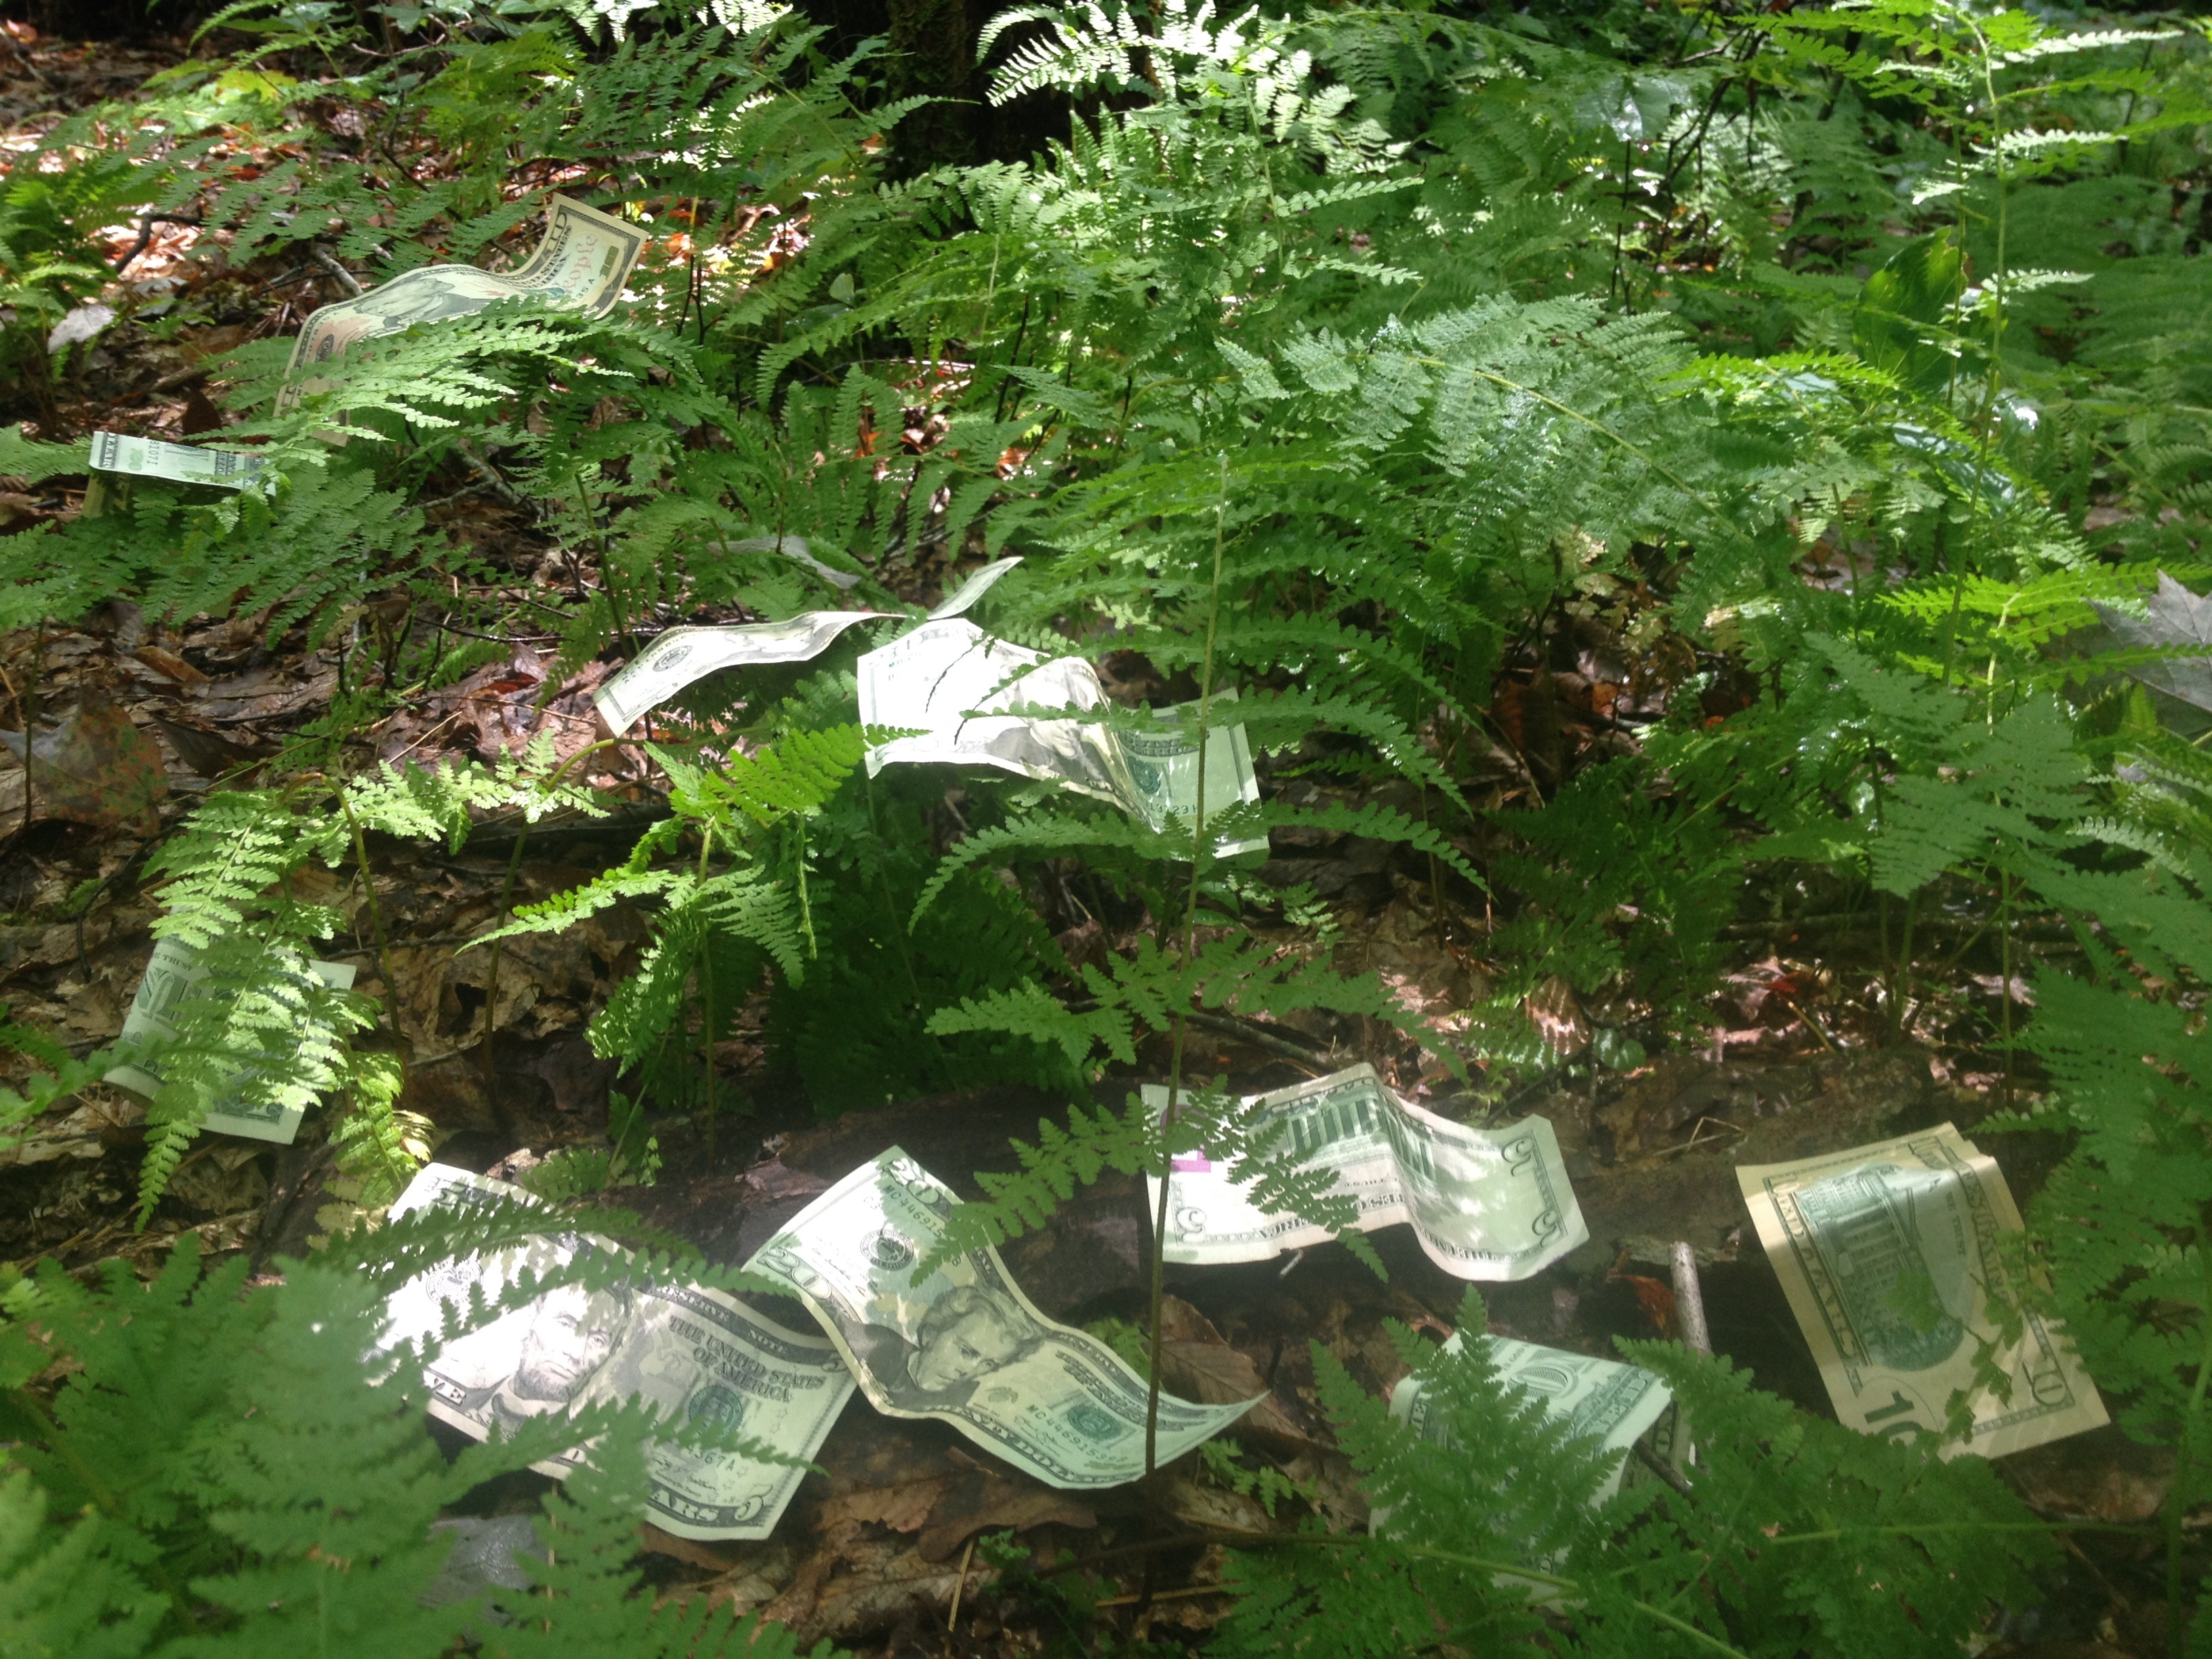 Federal Reserve Notes in the Ferns